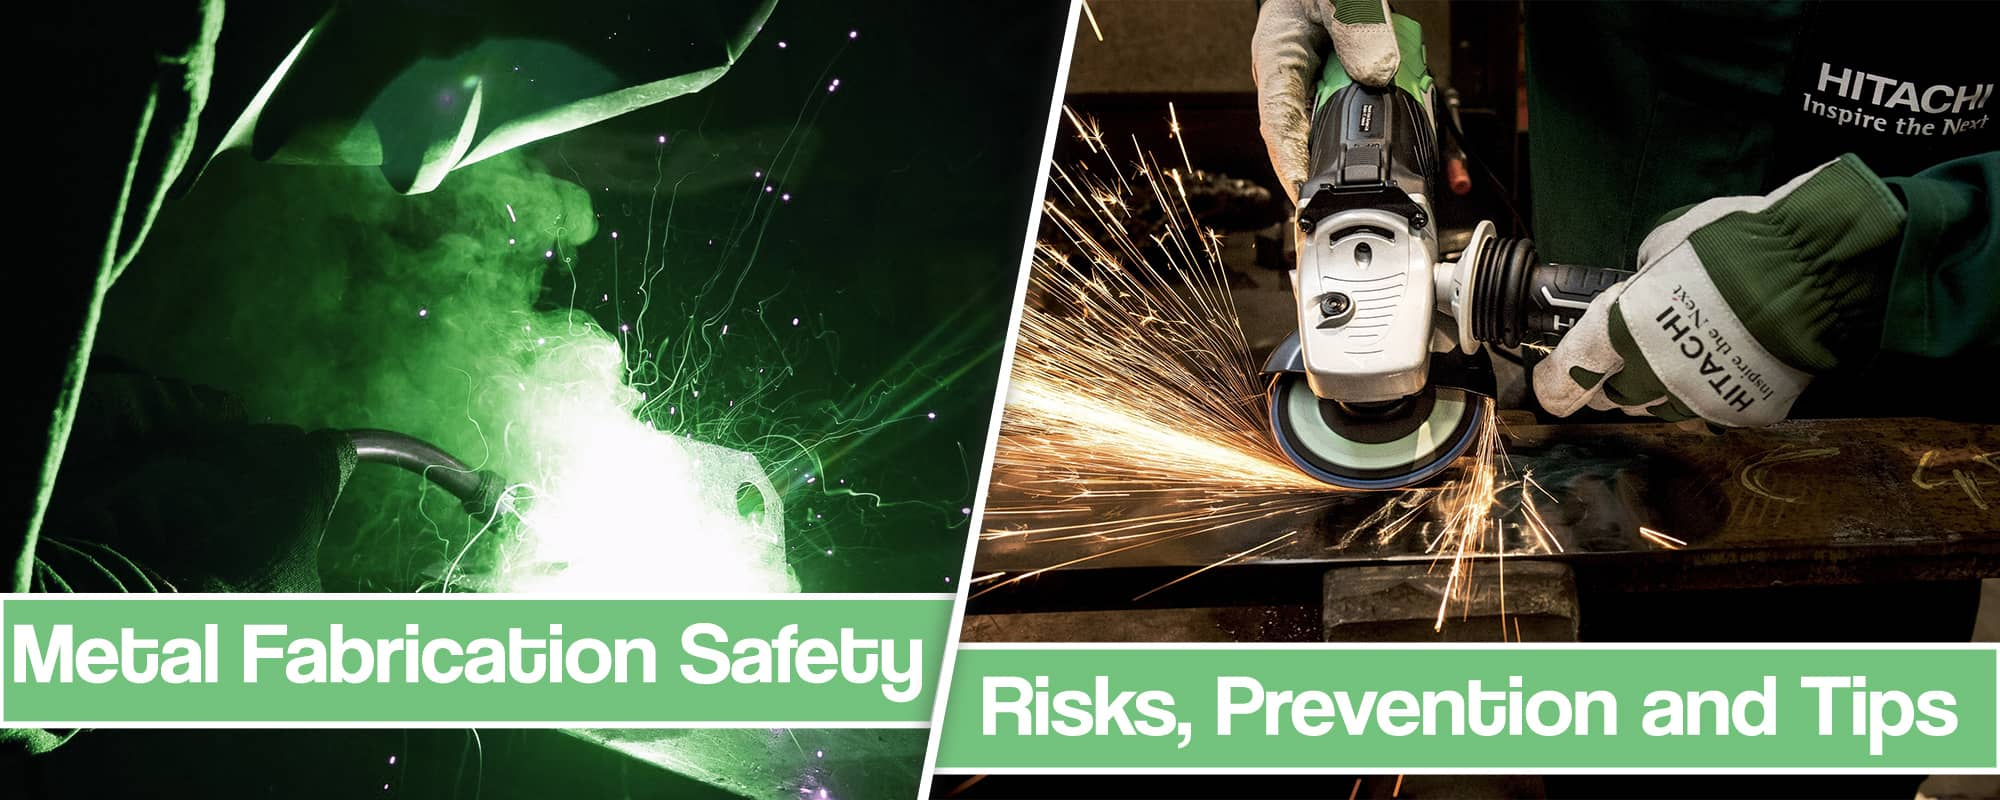 Feature image for metal fabrication safety article